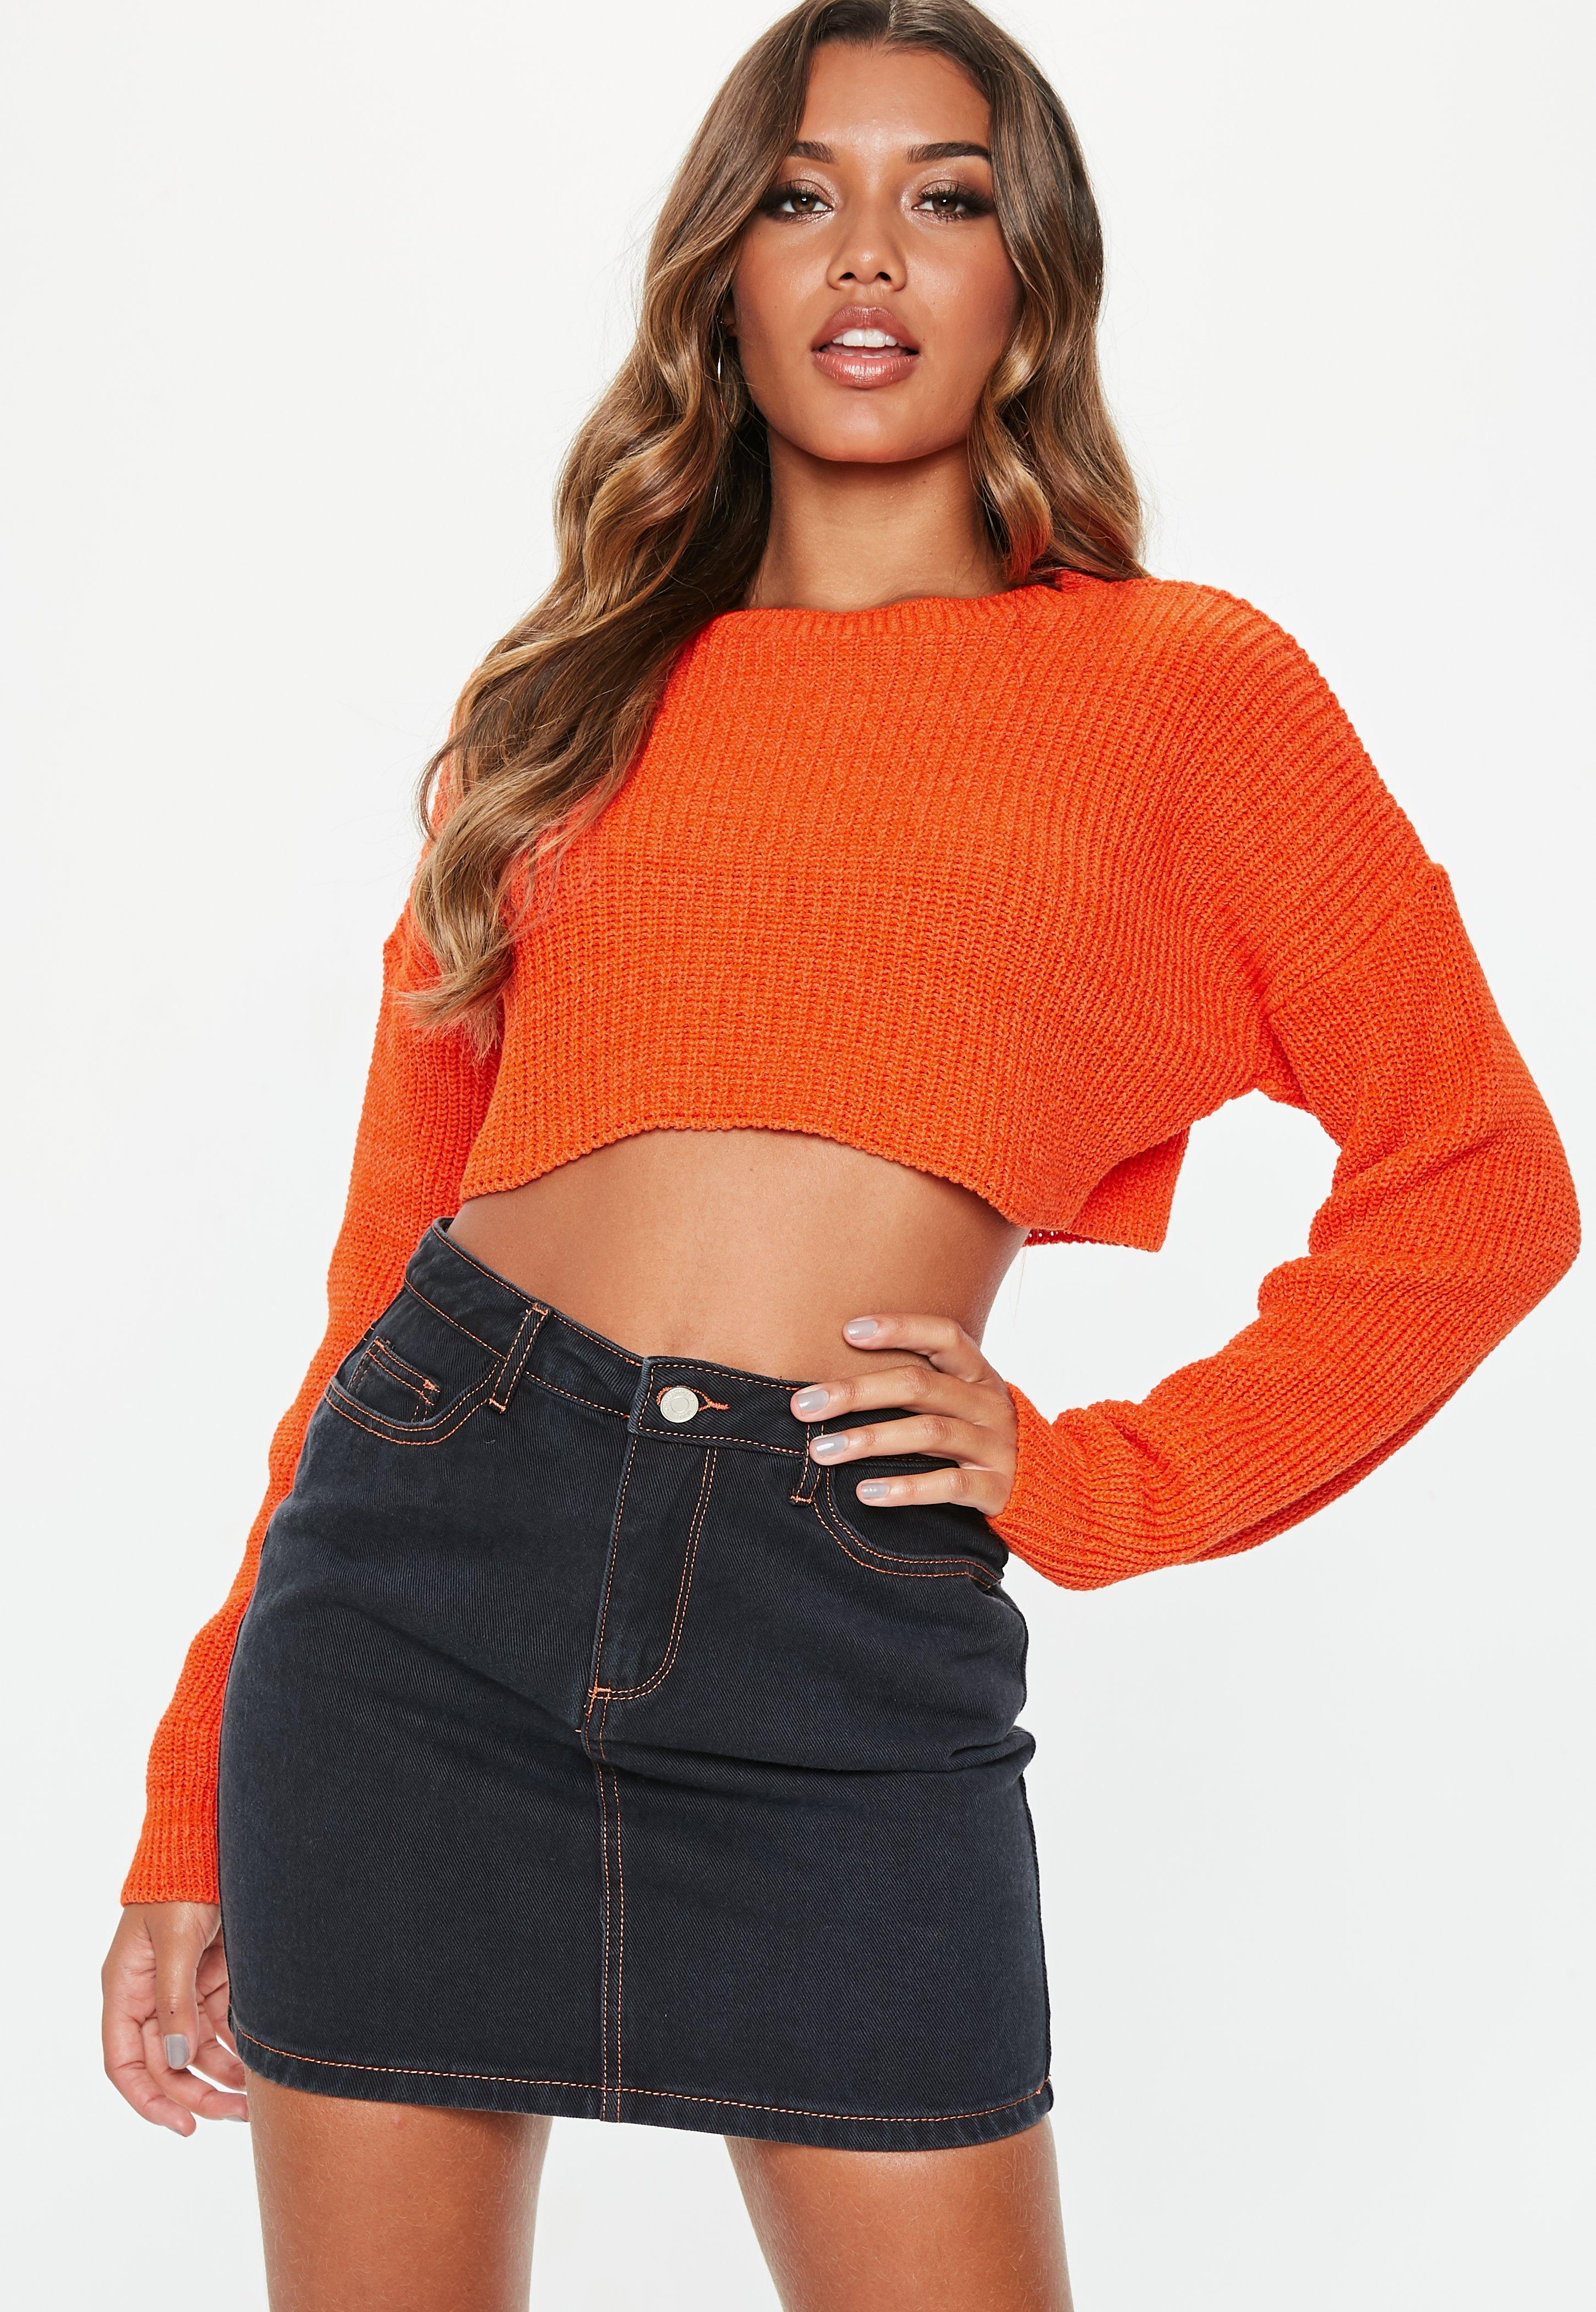 ccb06e4f64a9f Cropped Jumpers